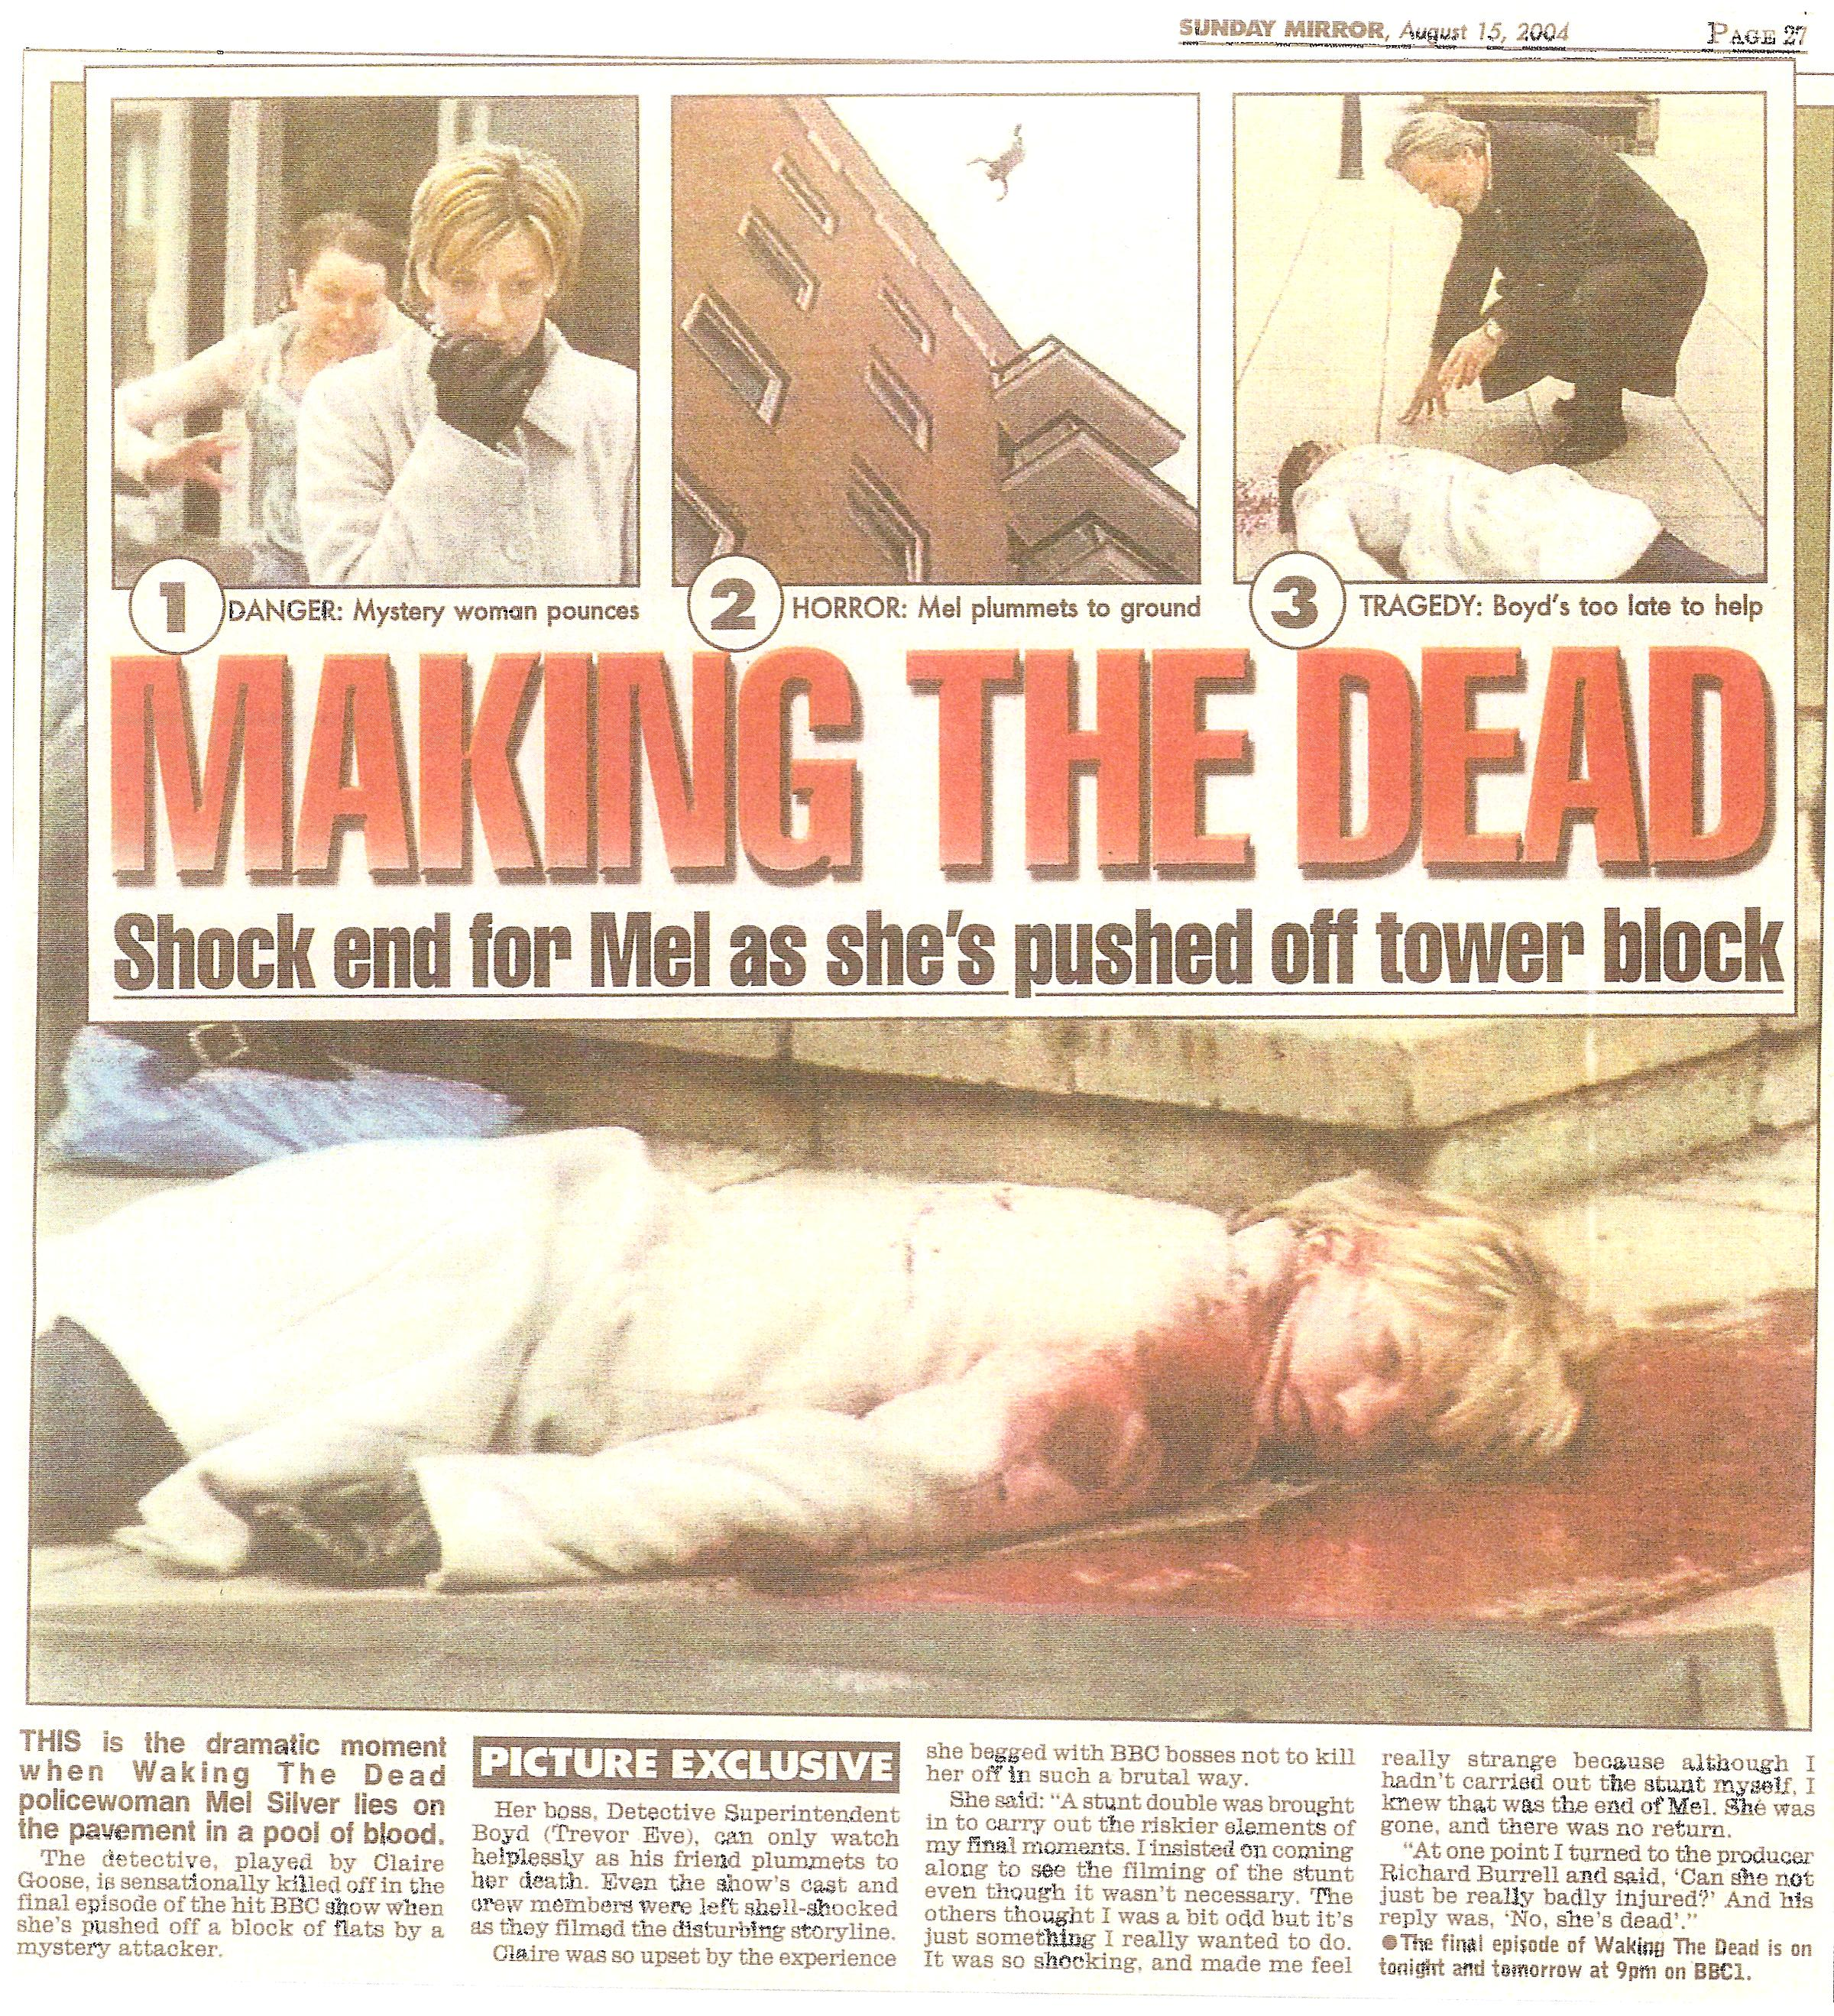 Waking The Dead High Fall Daily Mirror.jpg